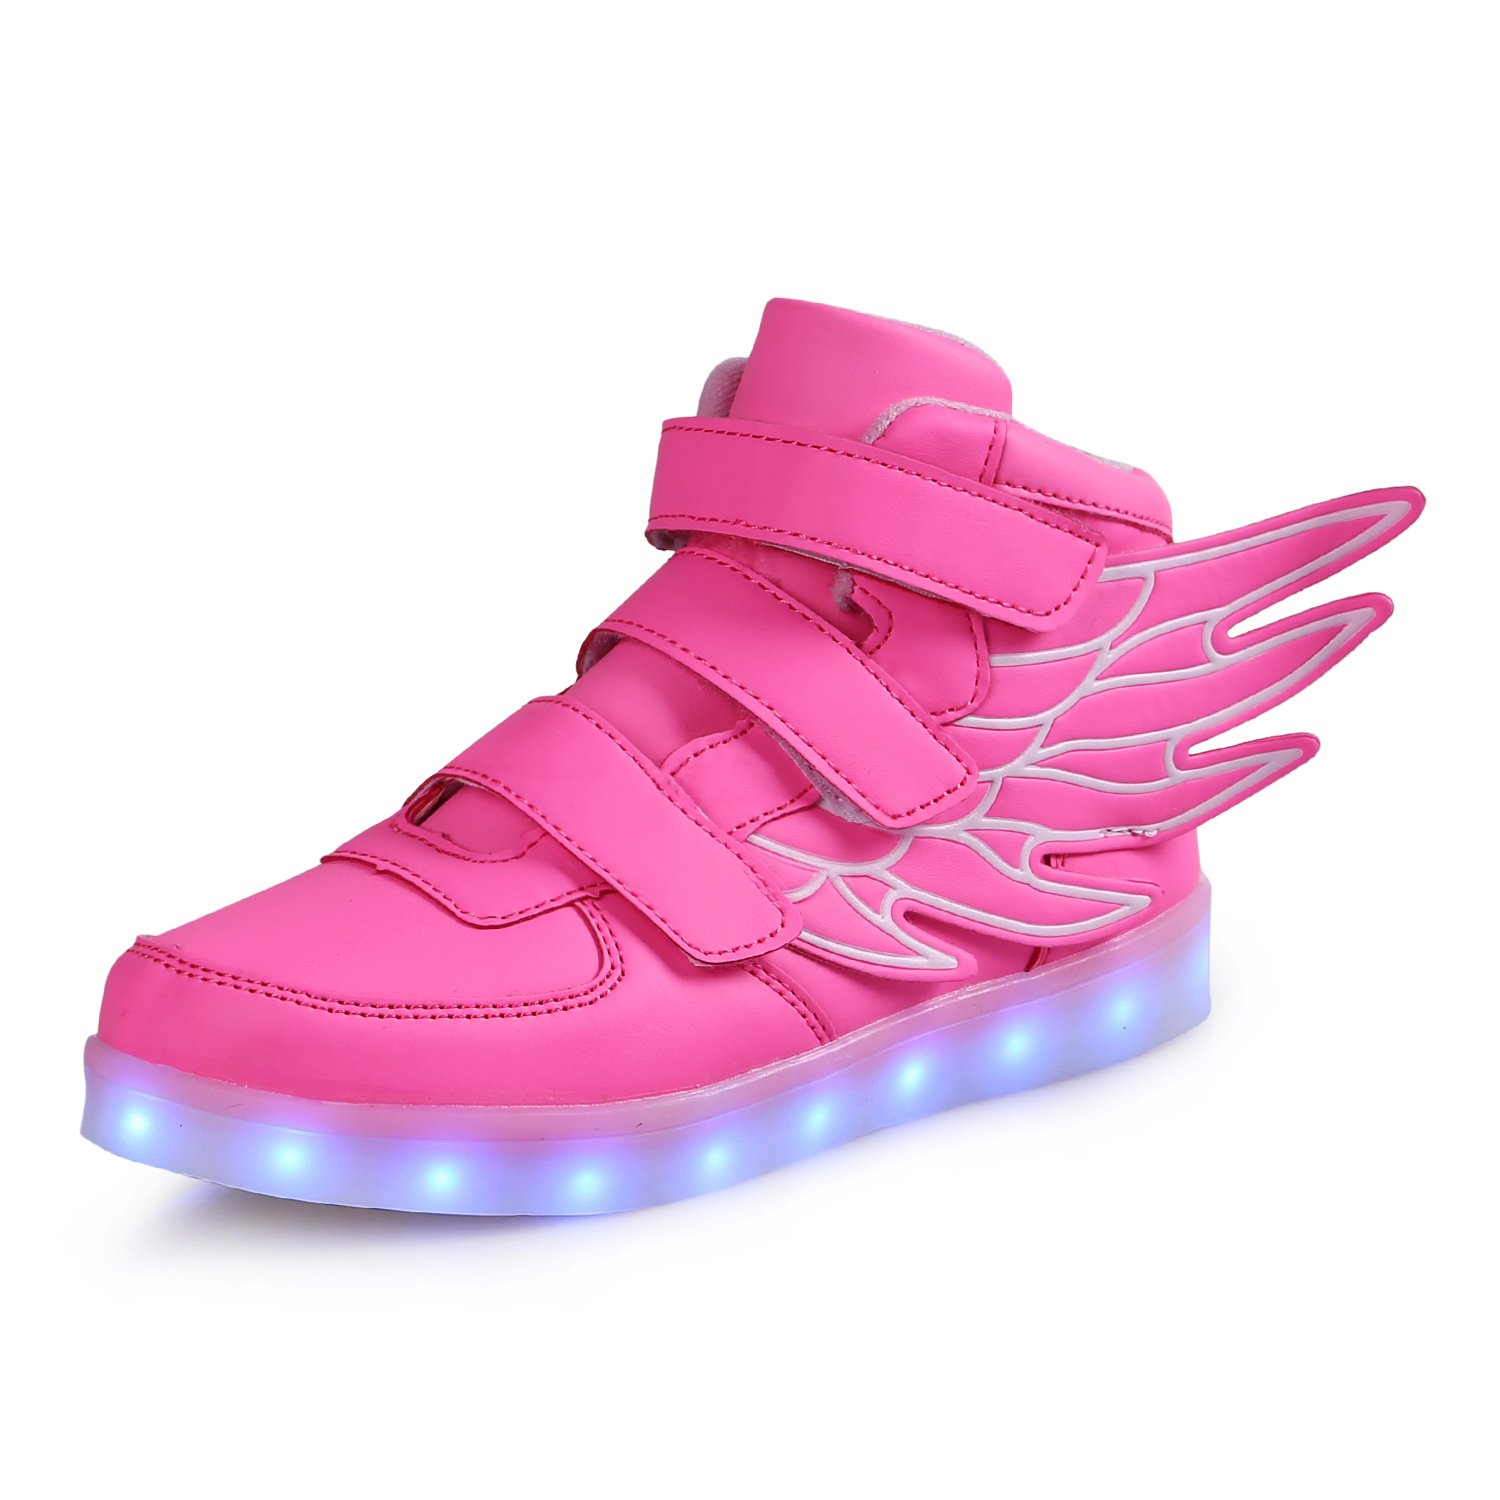 LED Light Up Shoes with Wings Kids Girls High Top Boots Boys Breathable Flashing Sneakers for Christmas